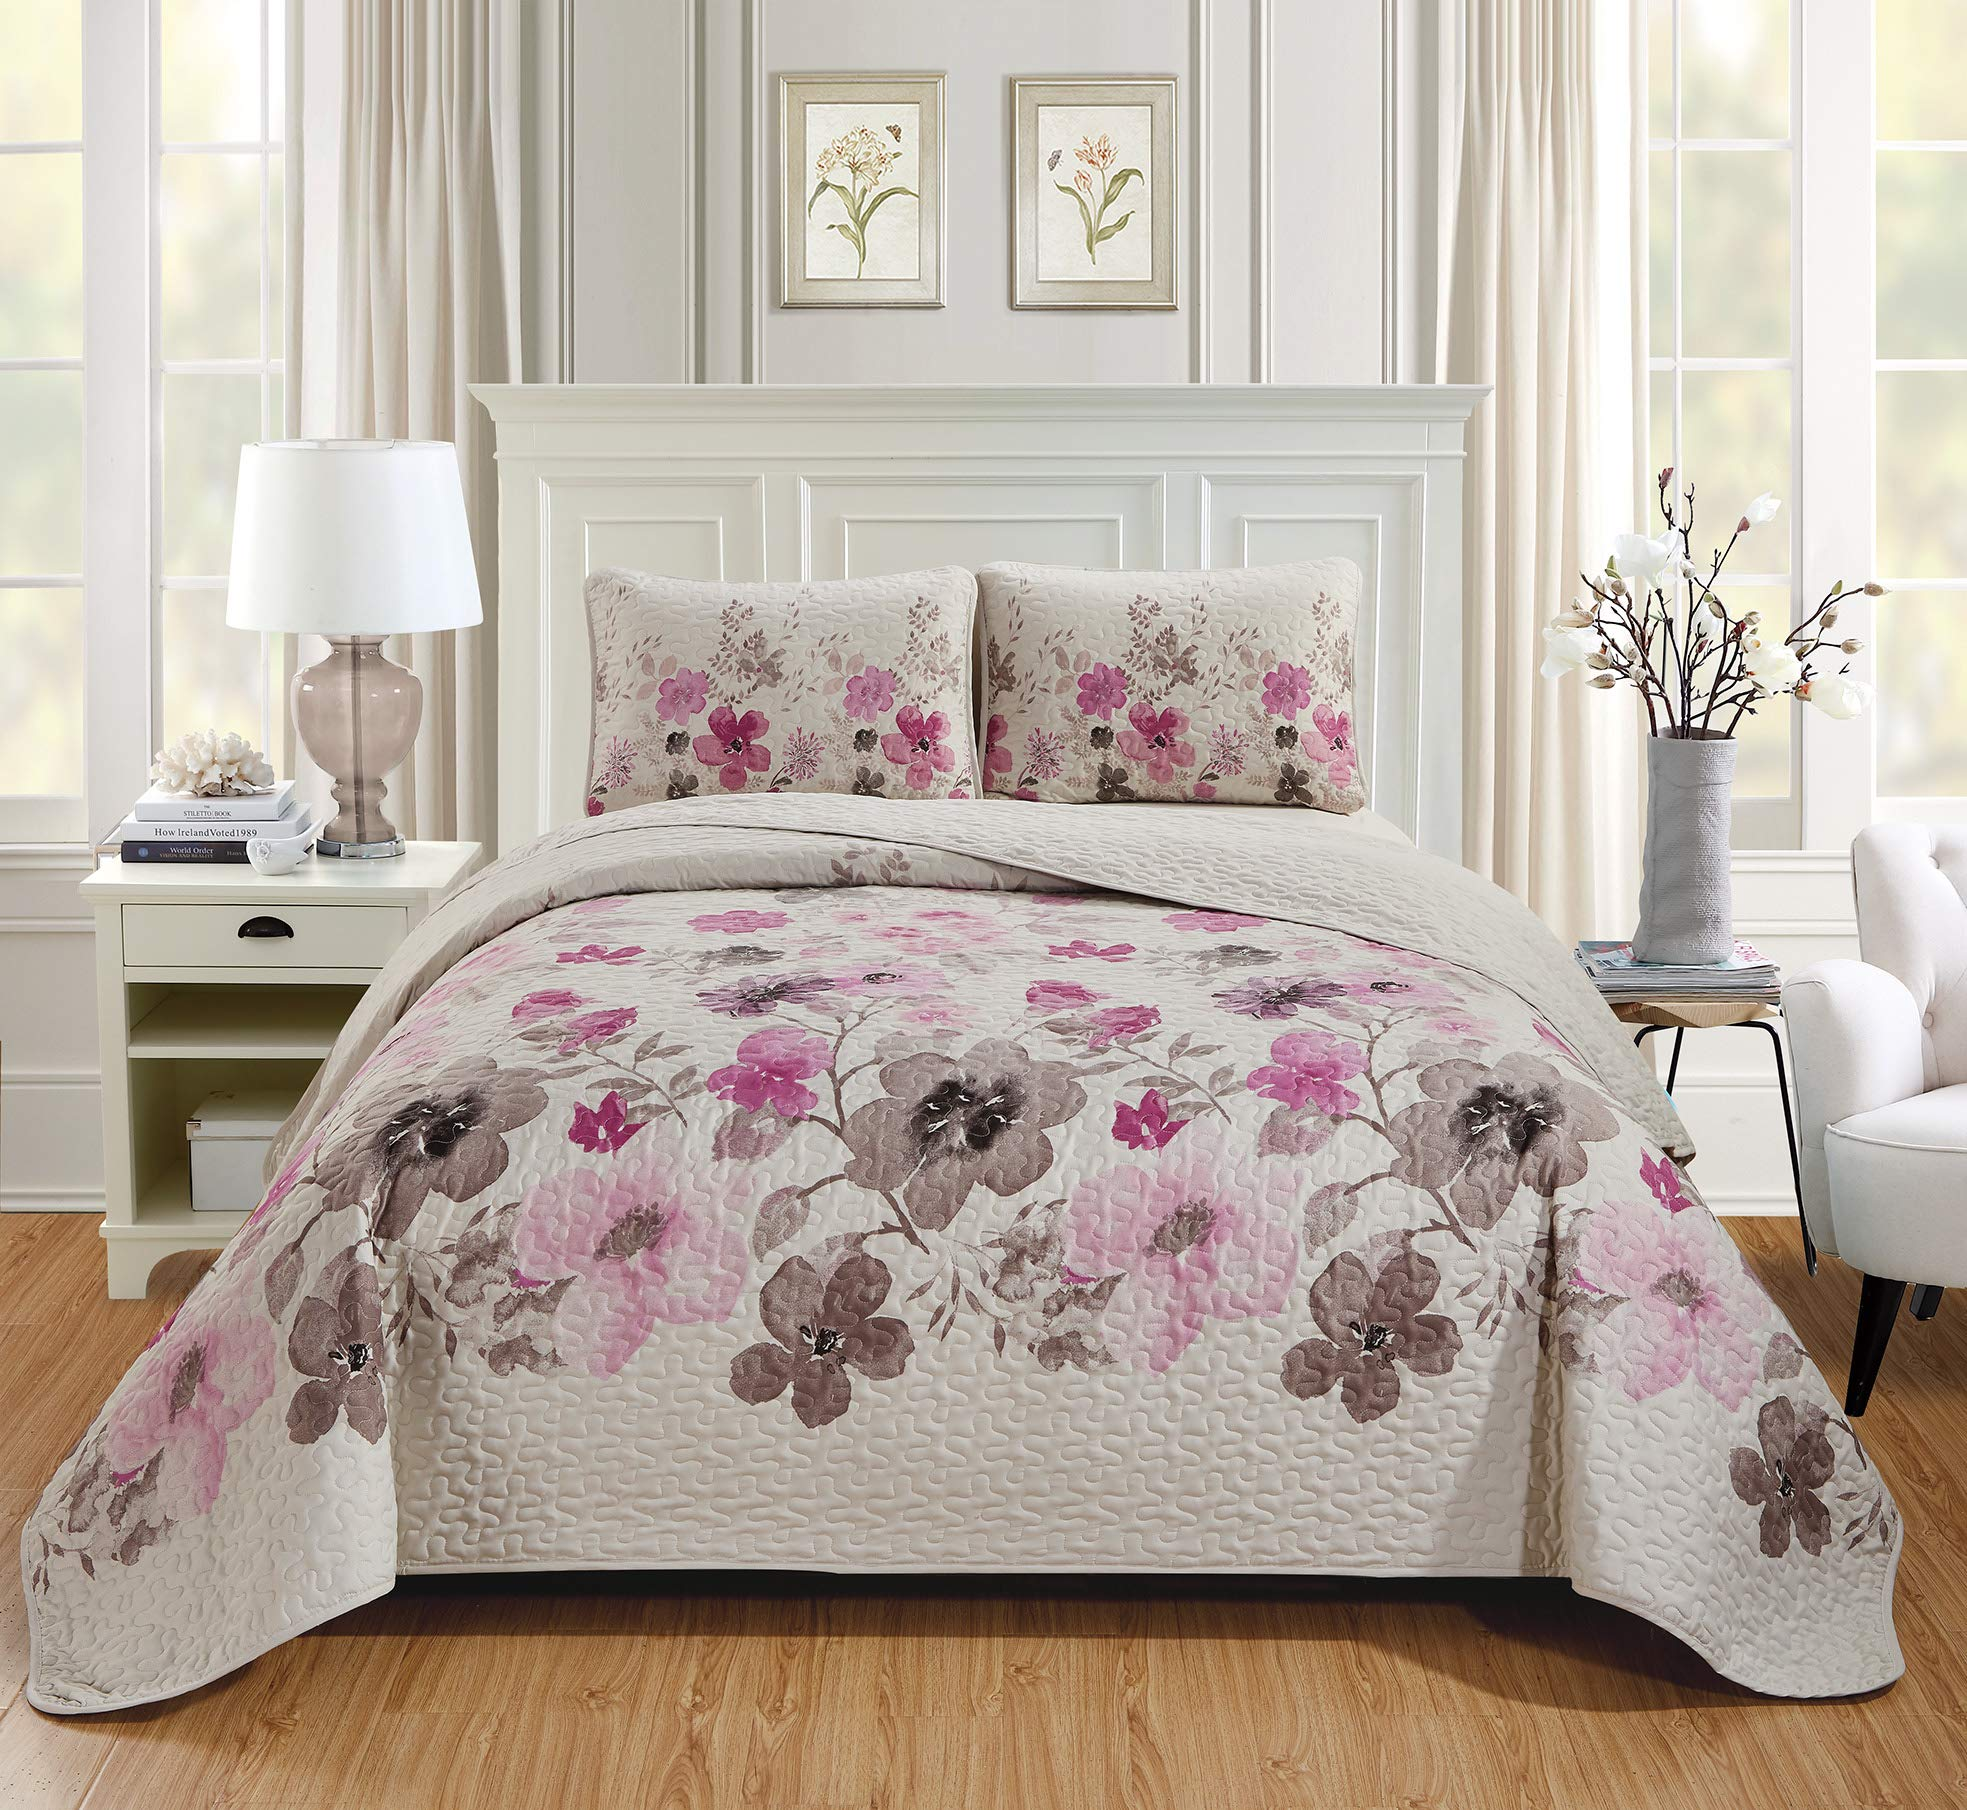 Kids Zone Home Linen Purple Lily 2pc Twin/Twin Extra Long Over Size Bedspread with Beautiful Purple and Brown Flowers Print. by Kids Zone Home Linen